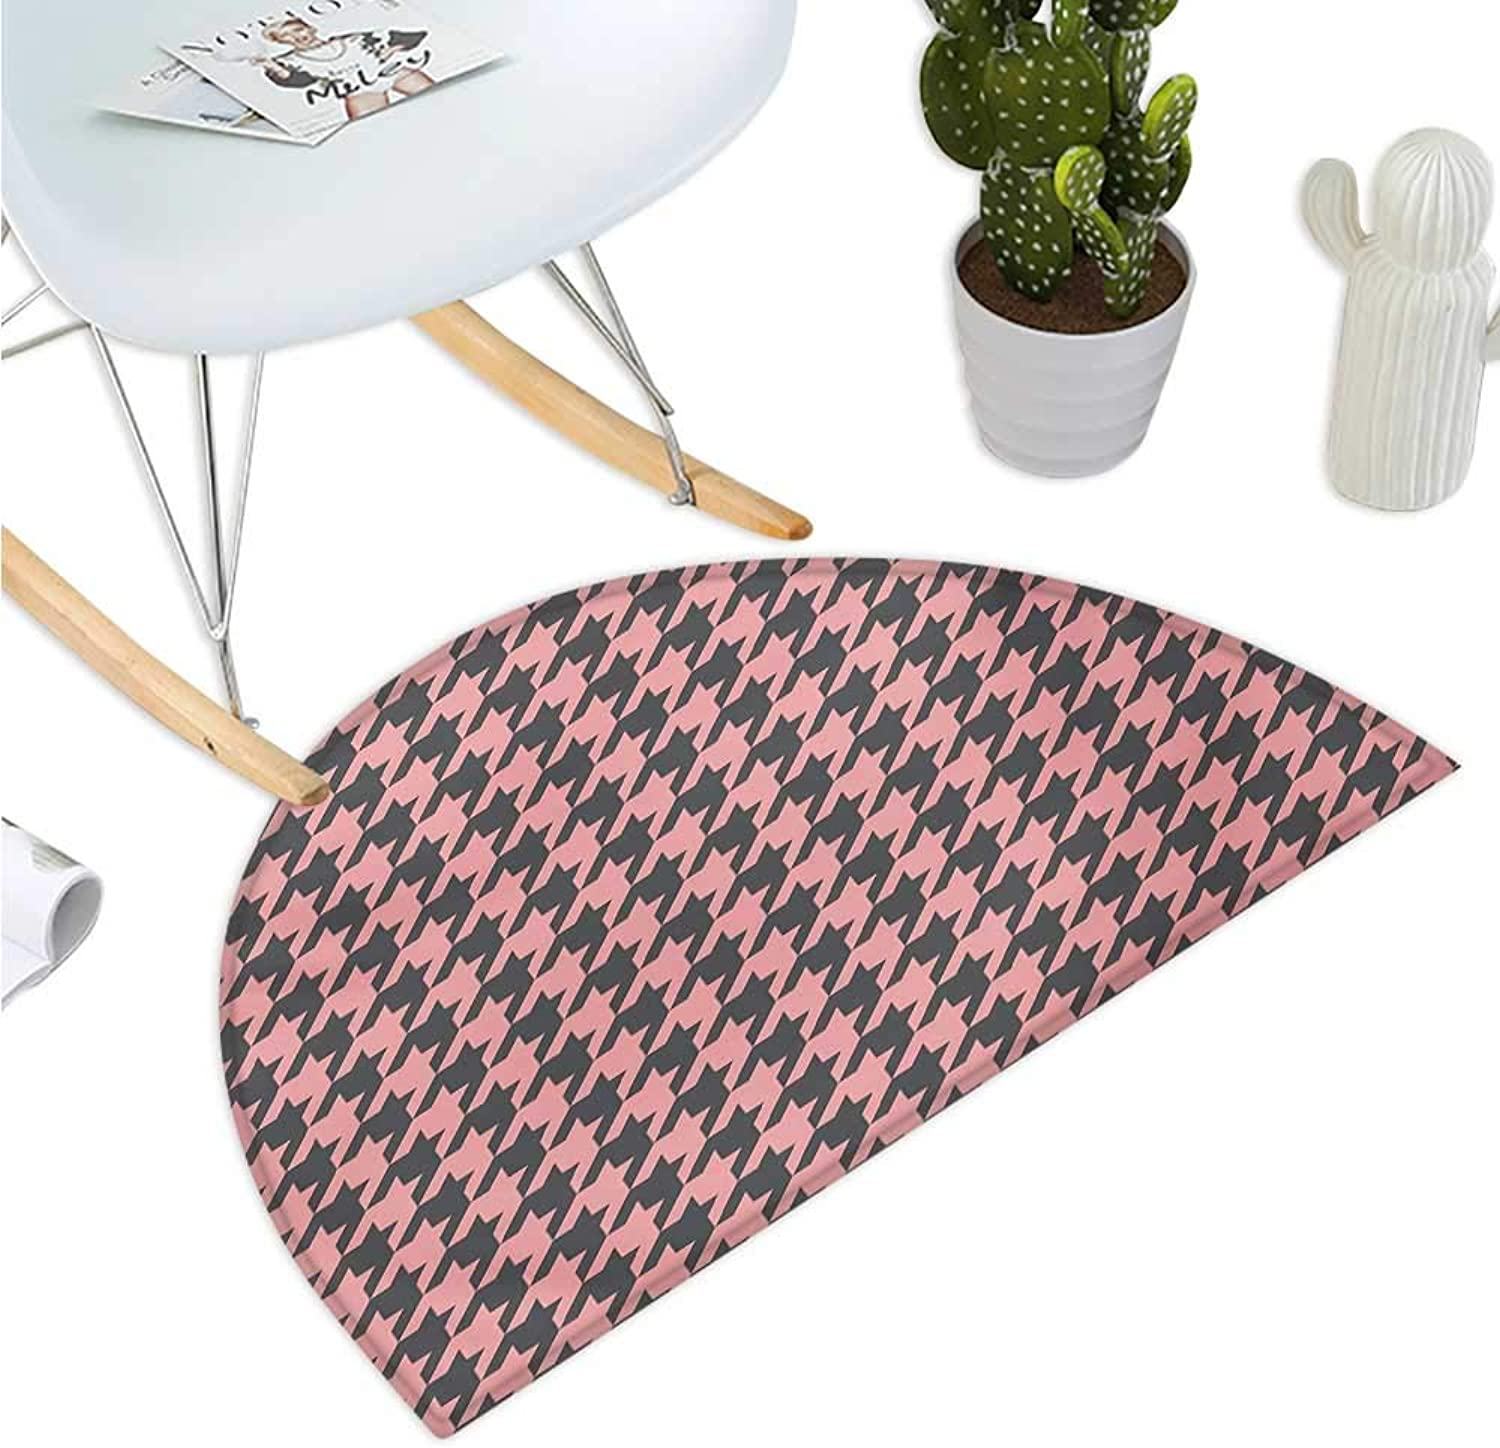 Pale Pink Semicircular Cushion Traditional Scottish Plaid Houndstooth Pattern Old Fashioned Pastel Bathroom Mat H 35.4  xD 53.1  Pale Pink Charcoal Grey